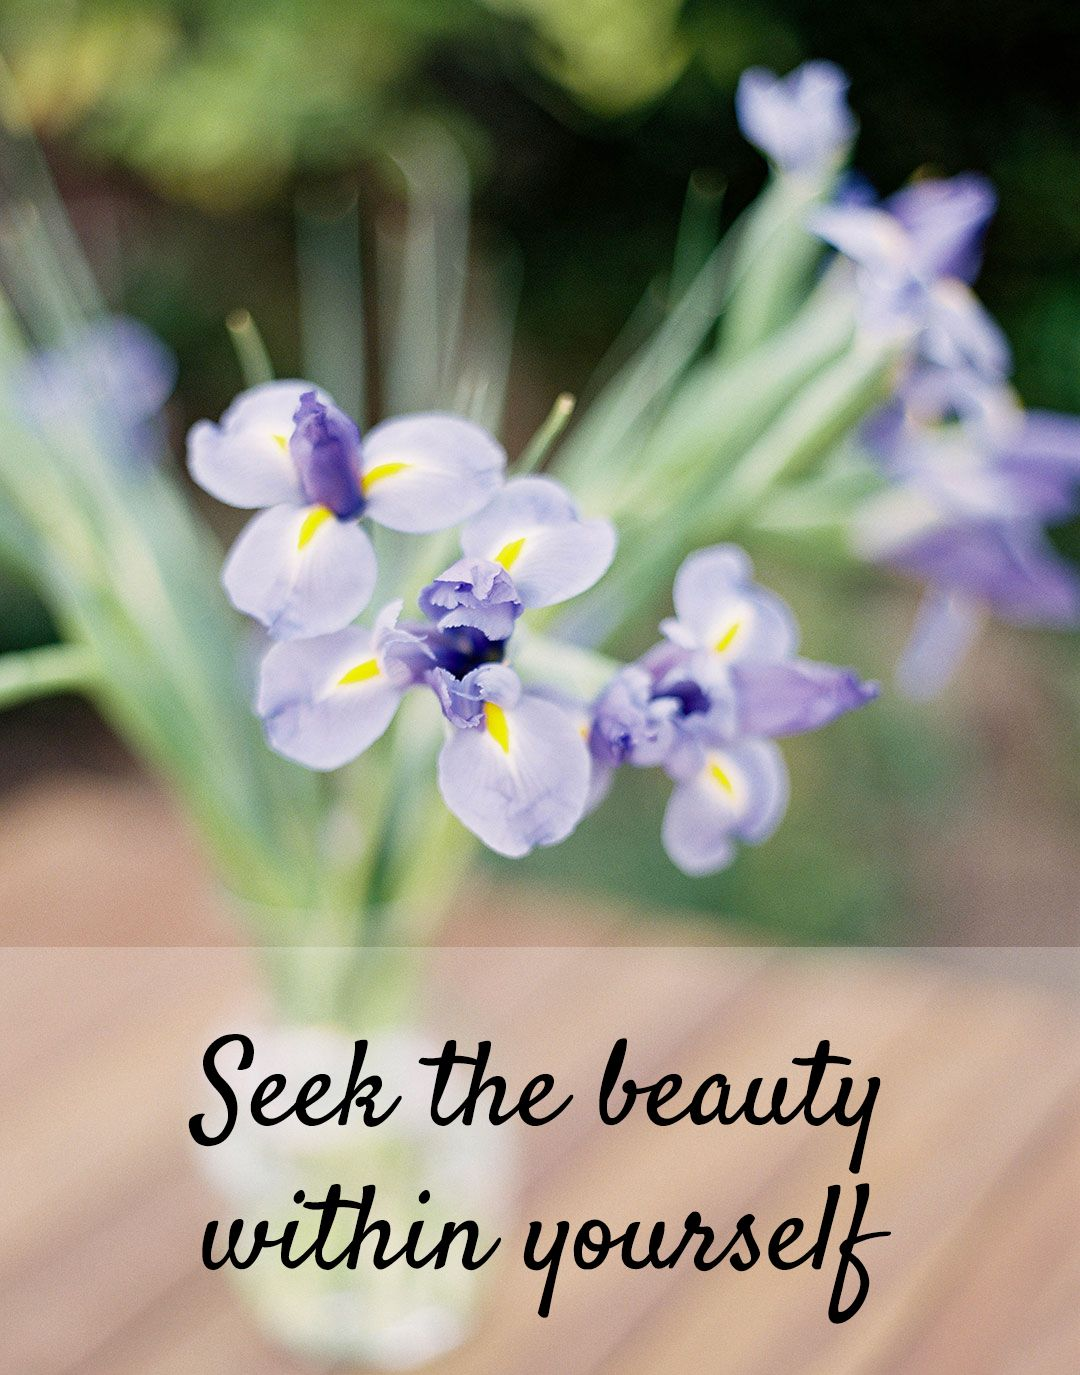 An inspirational quote seek the beauty within yourself an inspirational quote seek the beauty within yourself photography by jen huang dhlflorist Images